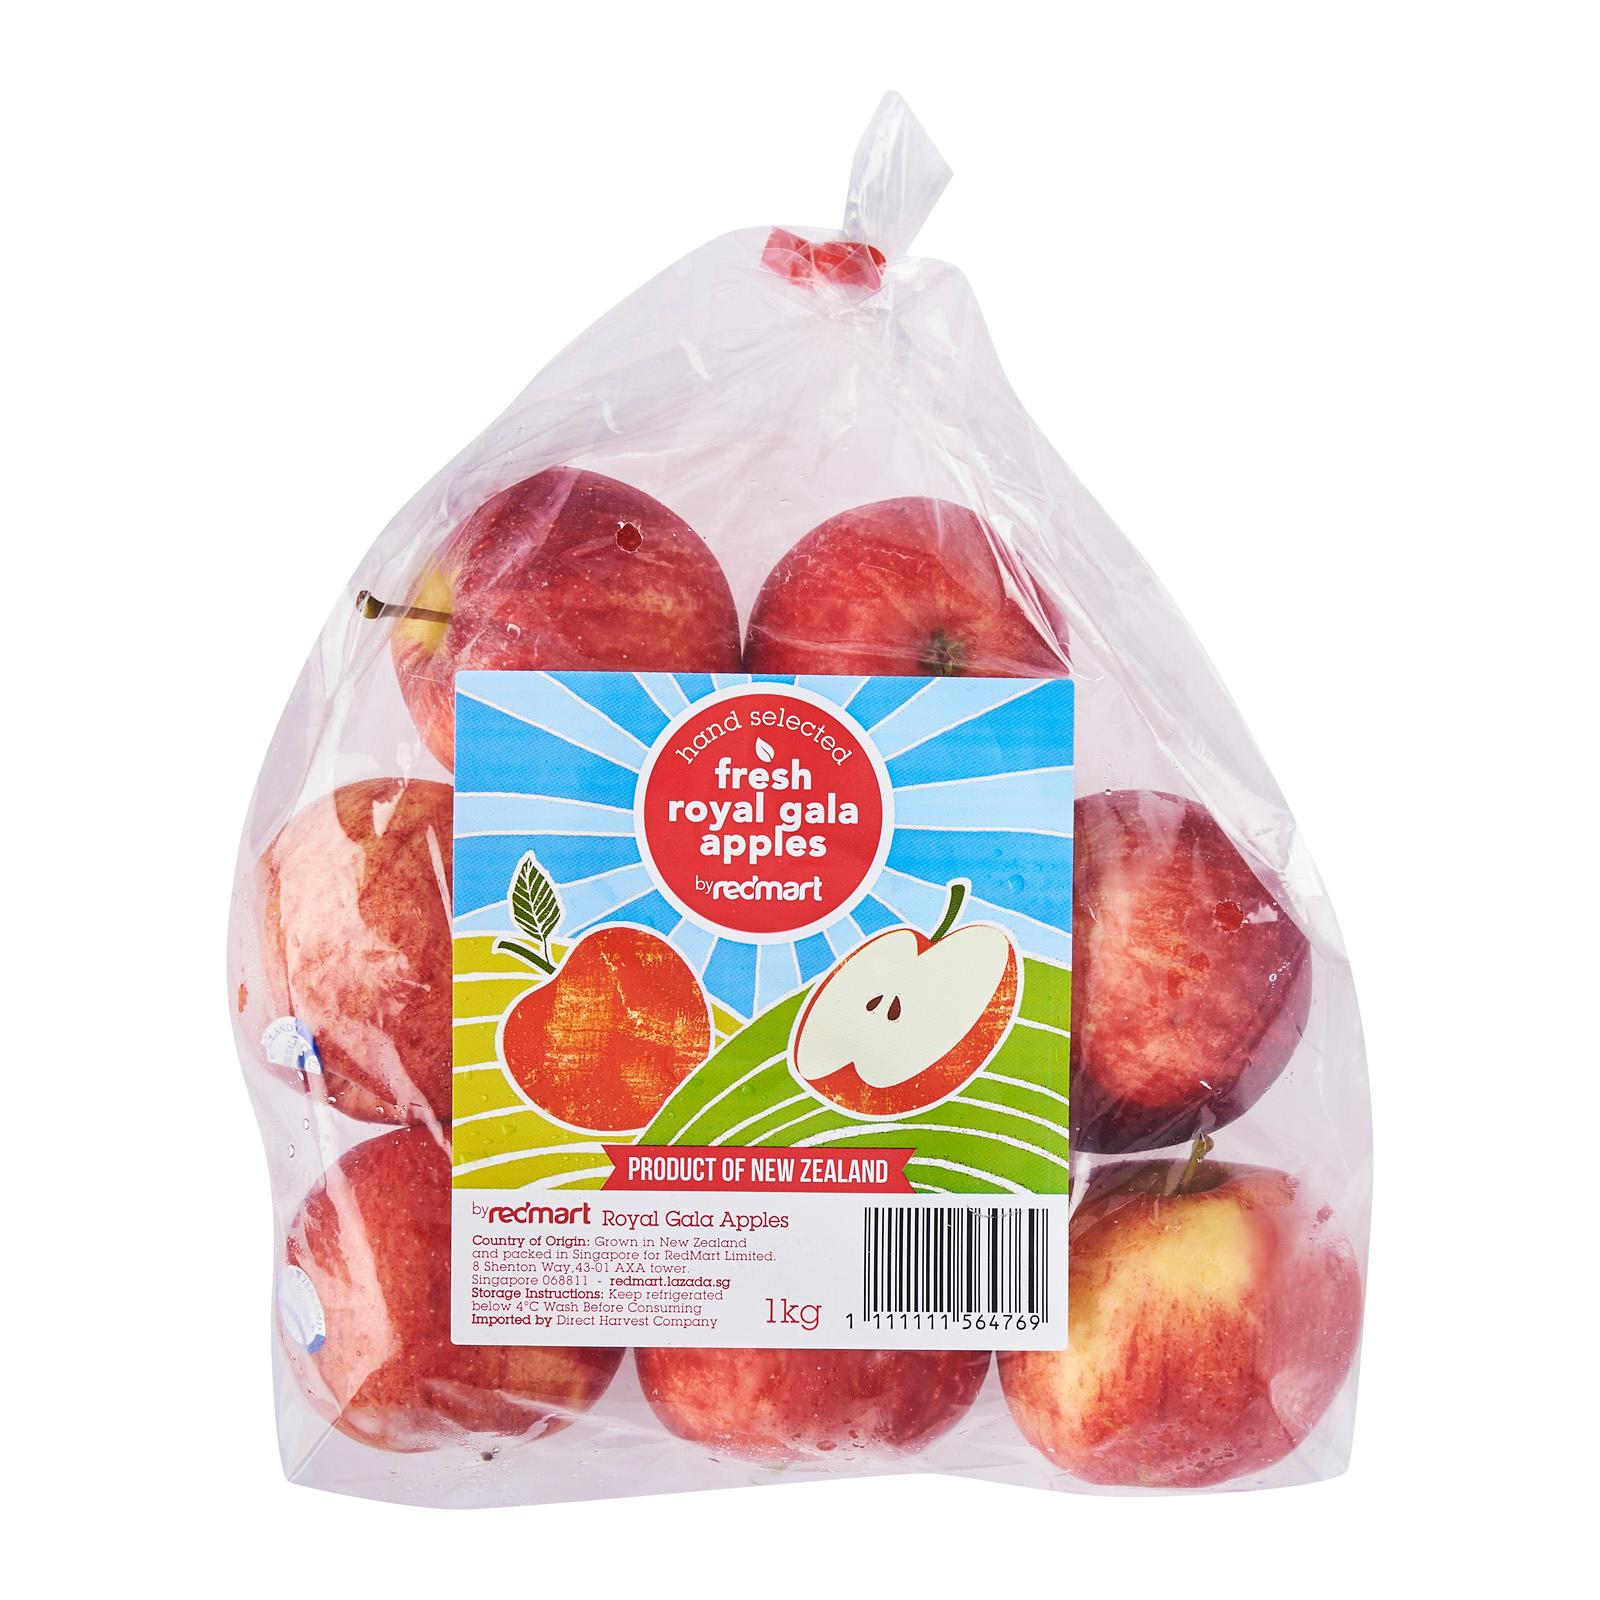 RedMart Royal Gala Apples